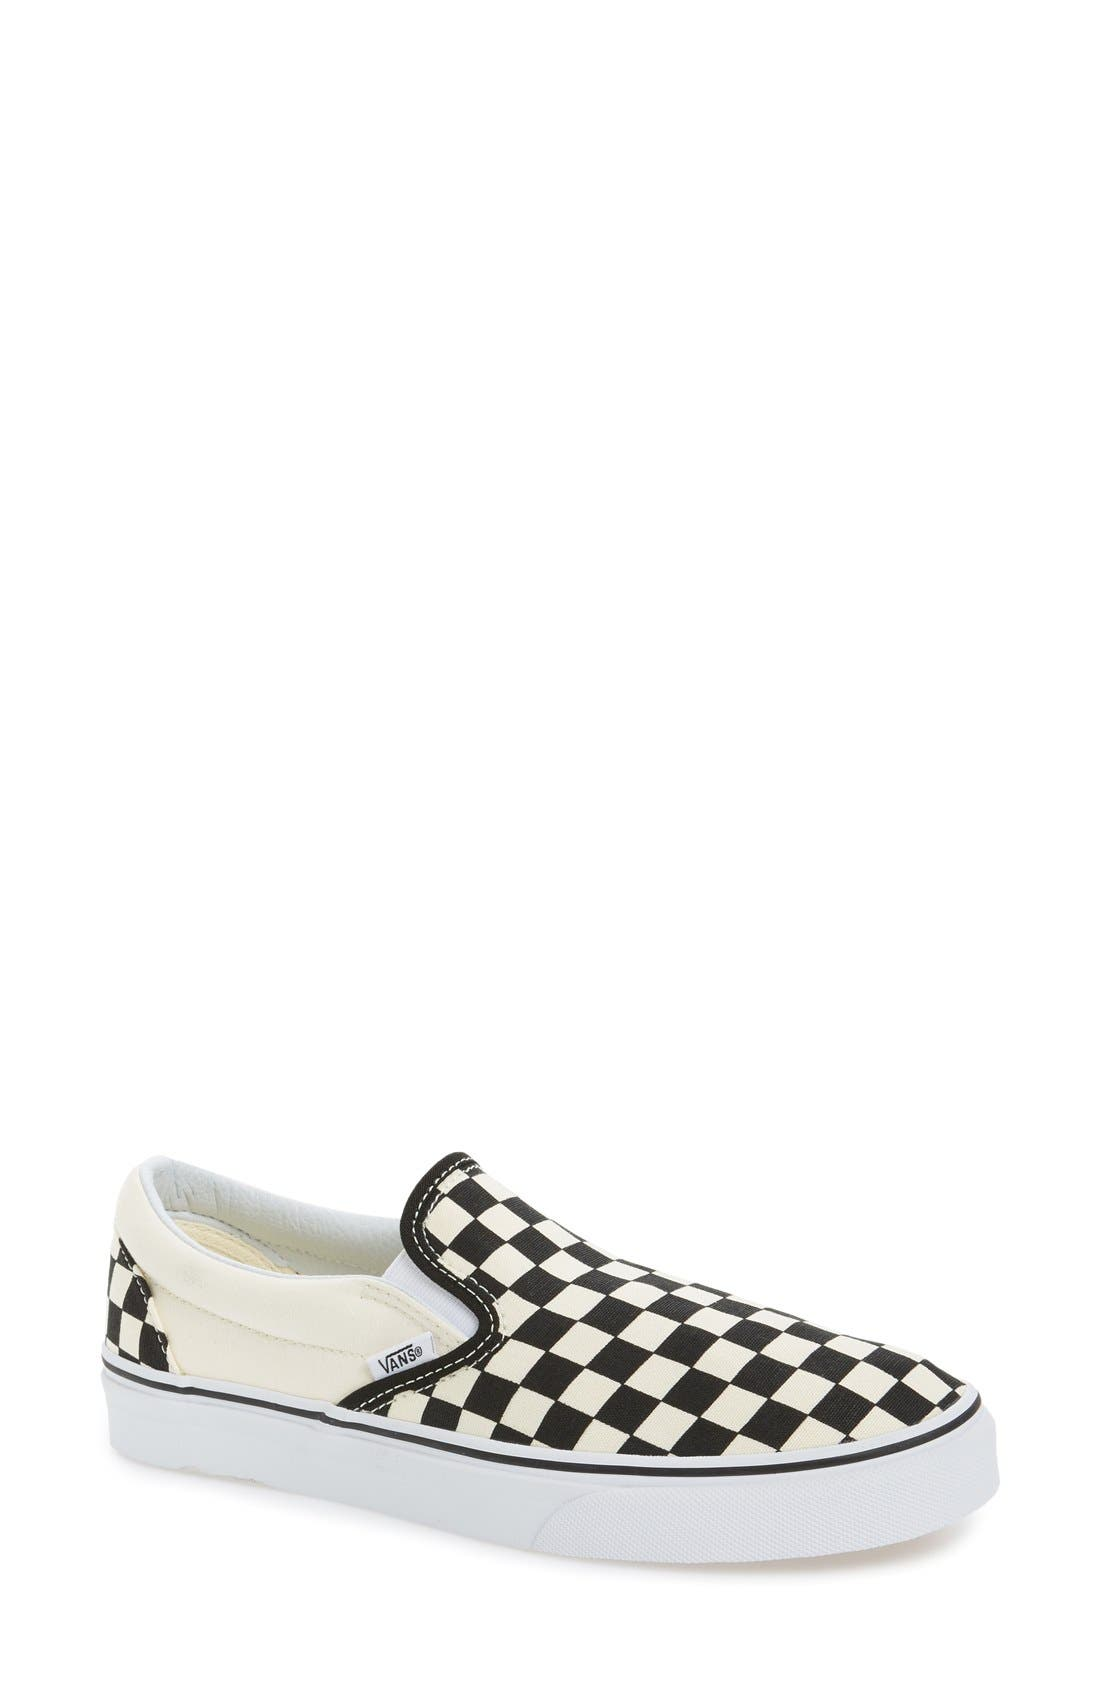 Alternate Image 1 Selected - Vans Classic Slip-On (Men)